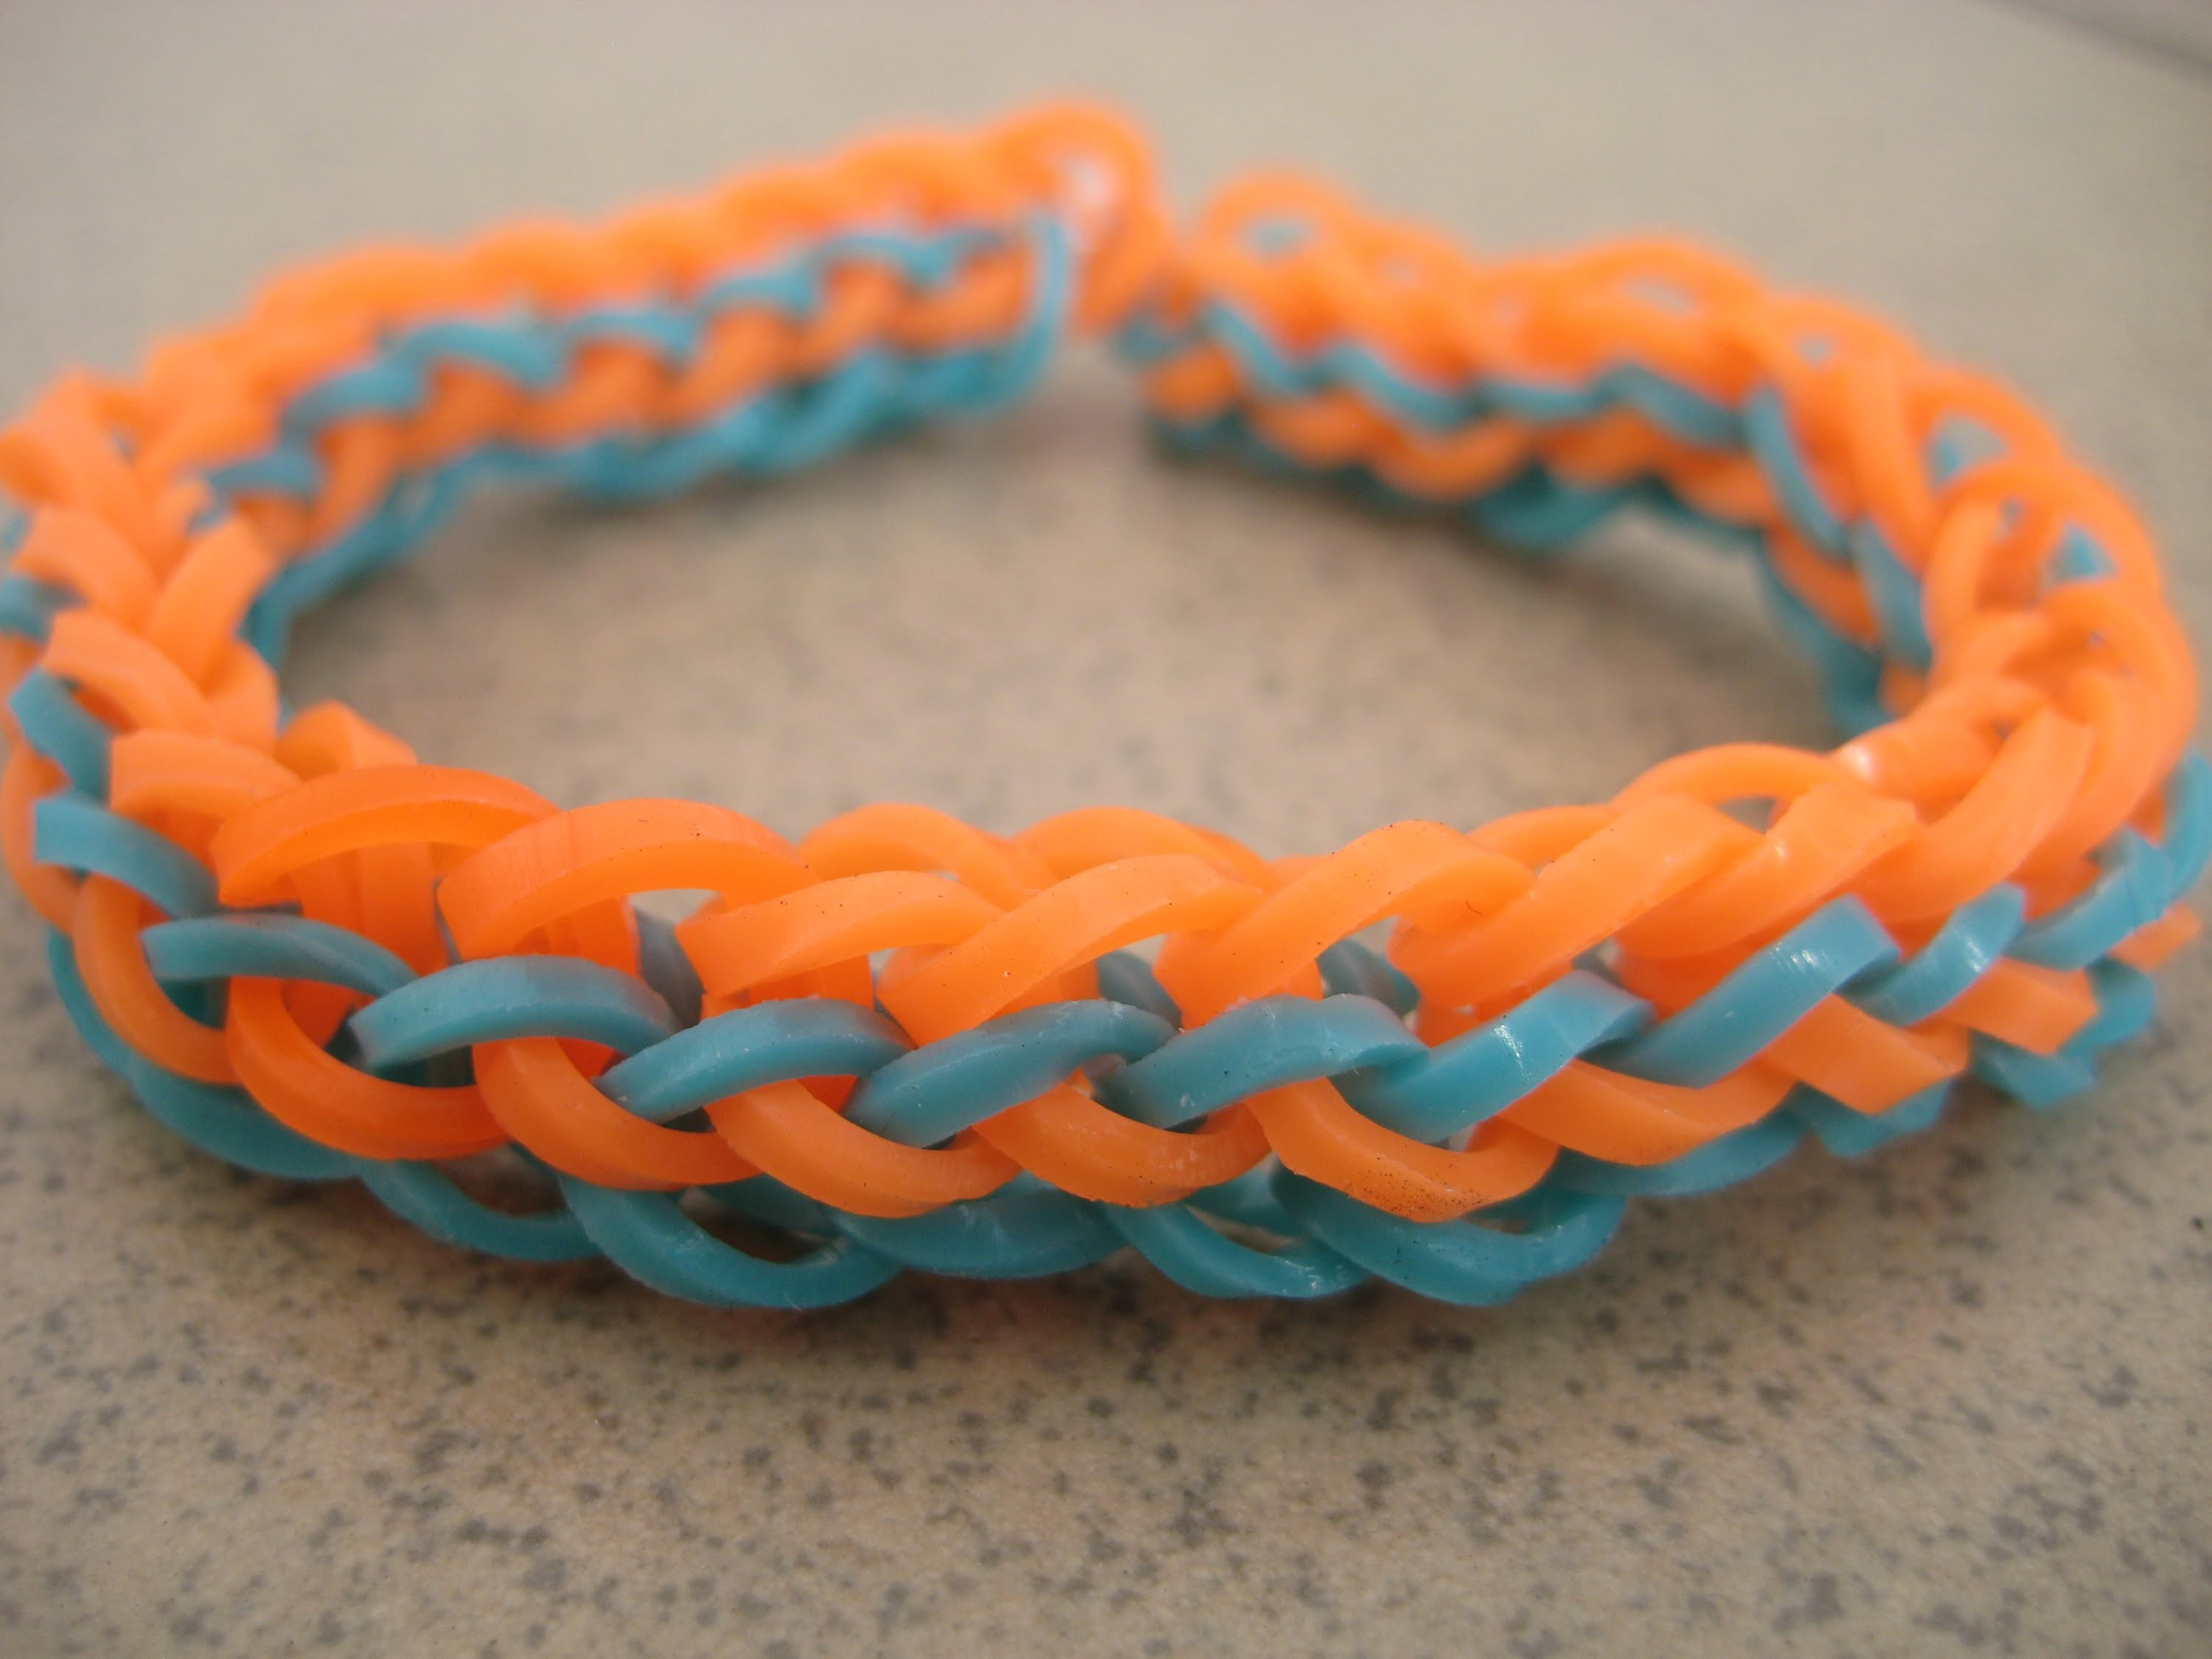 French Braid Rainbow Loom Monster Tail Bracelet Tutorial_